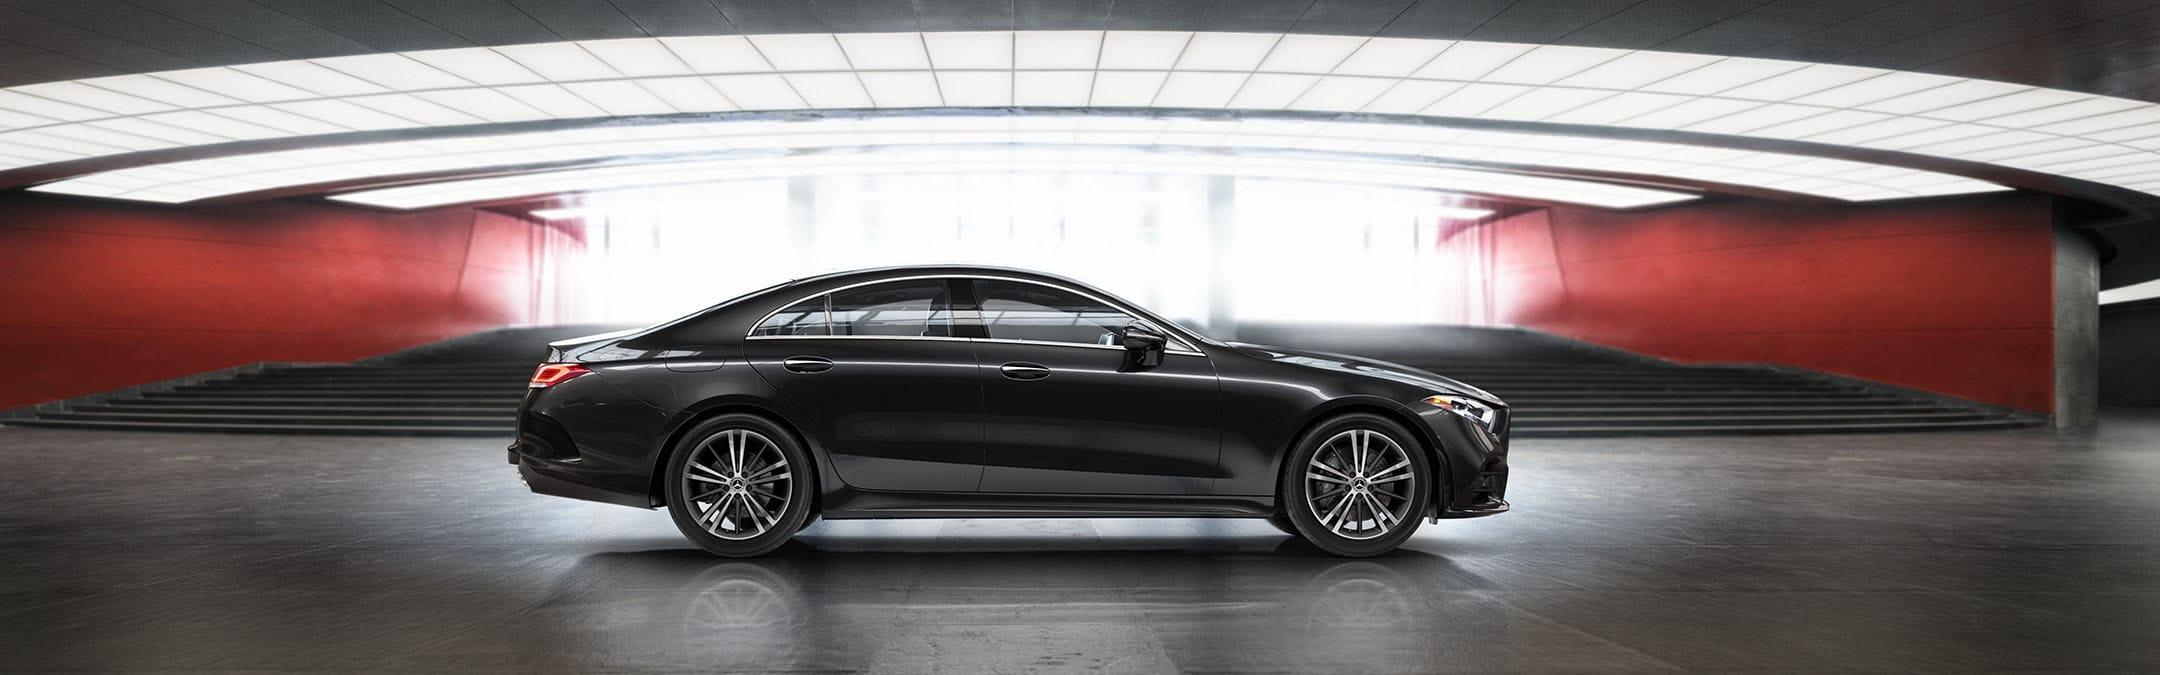 2020 CLS Coupe Design